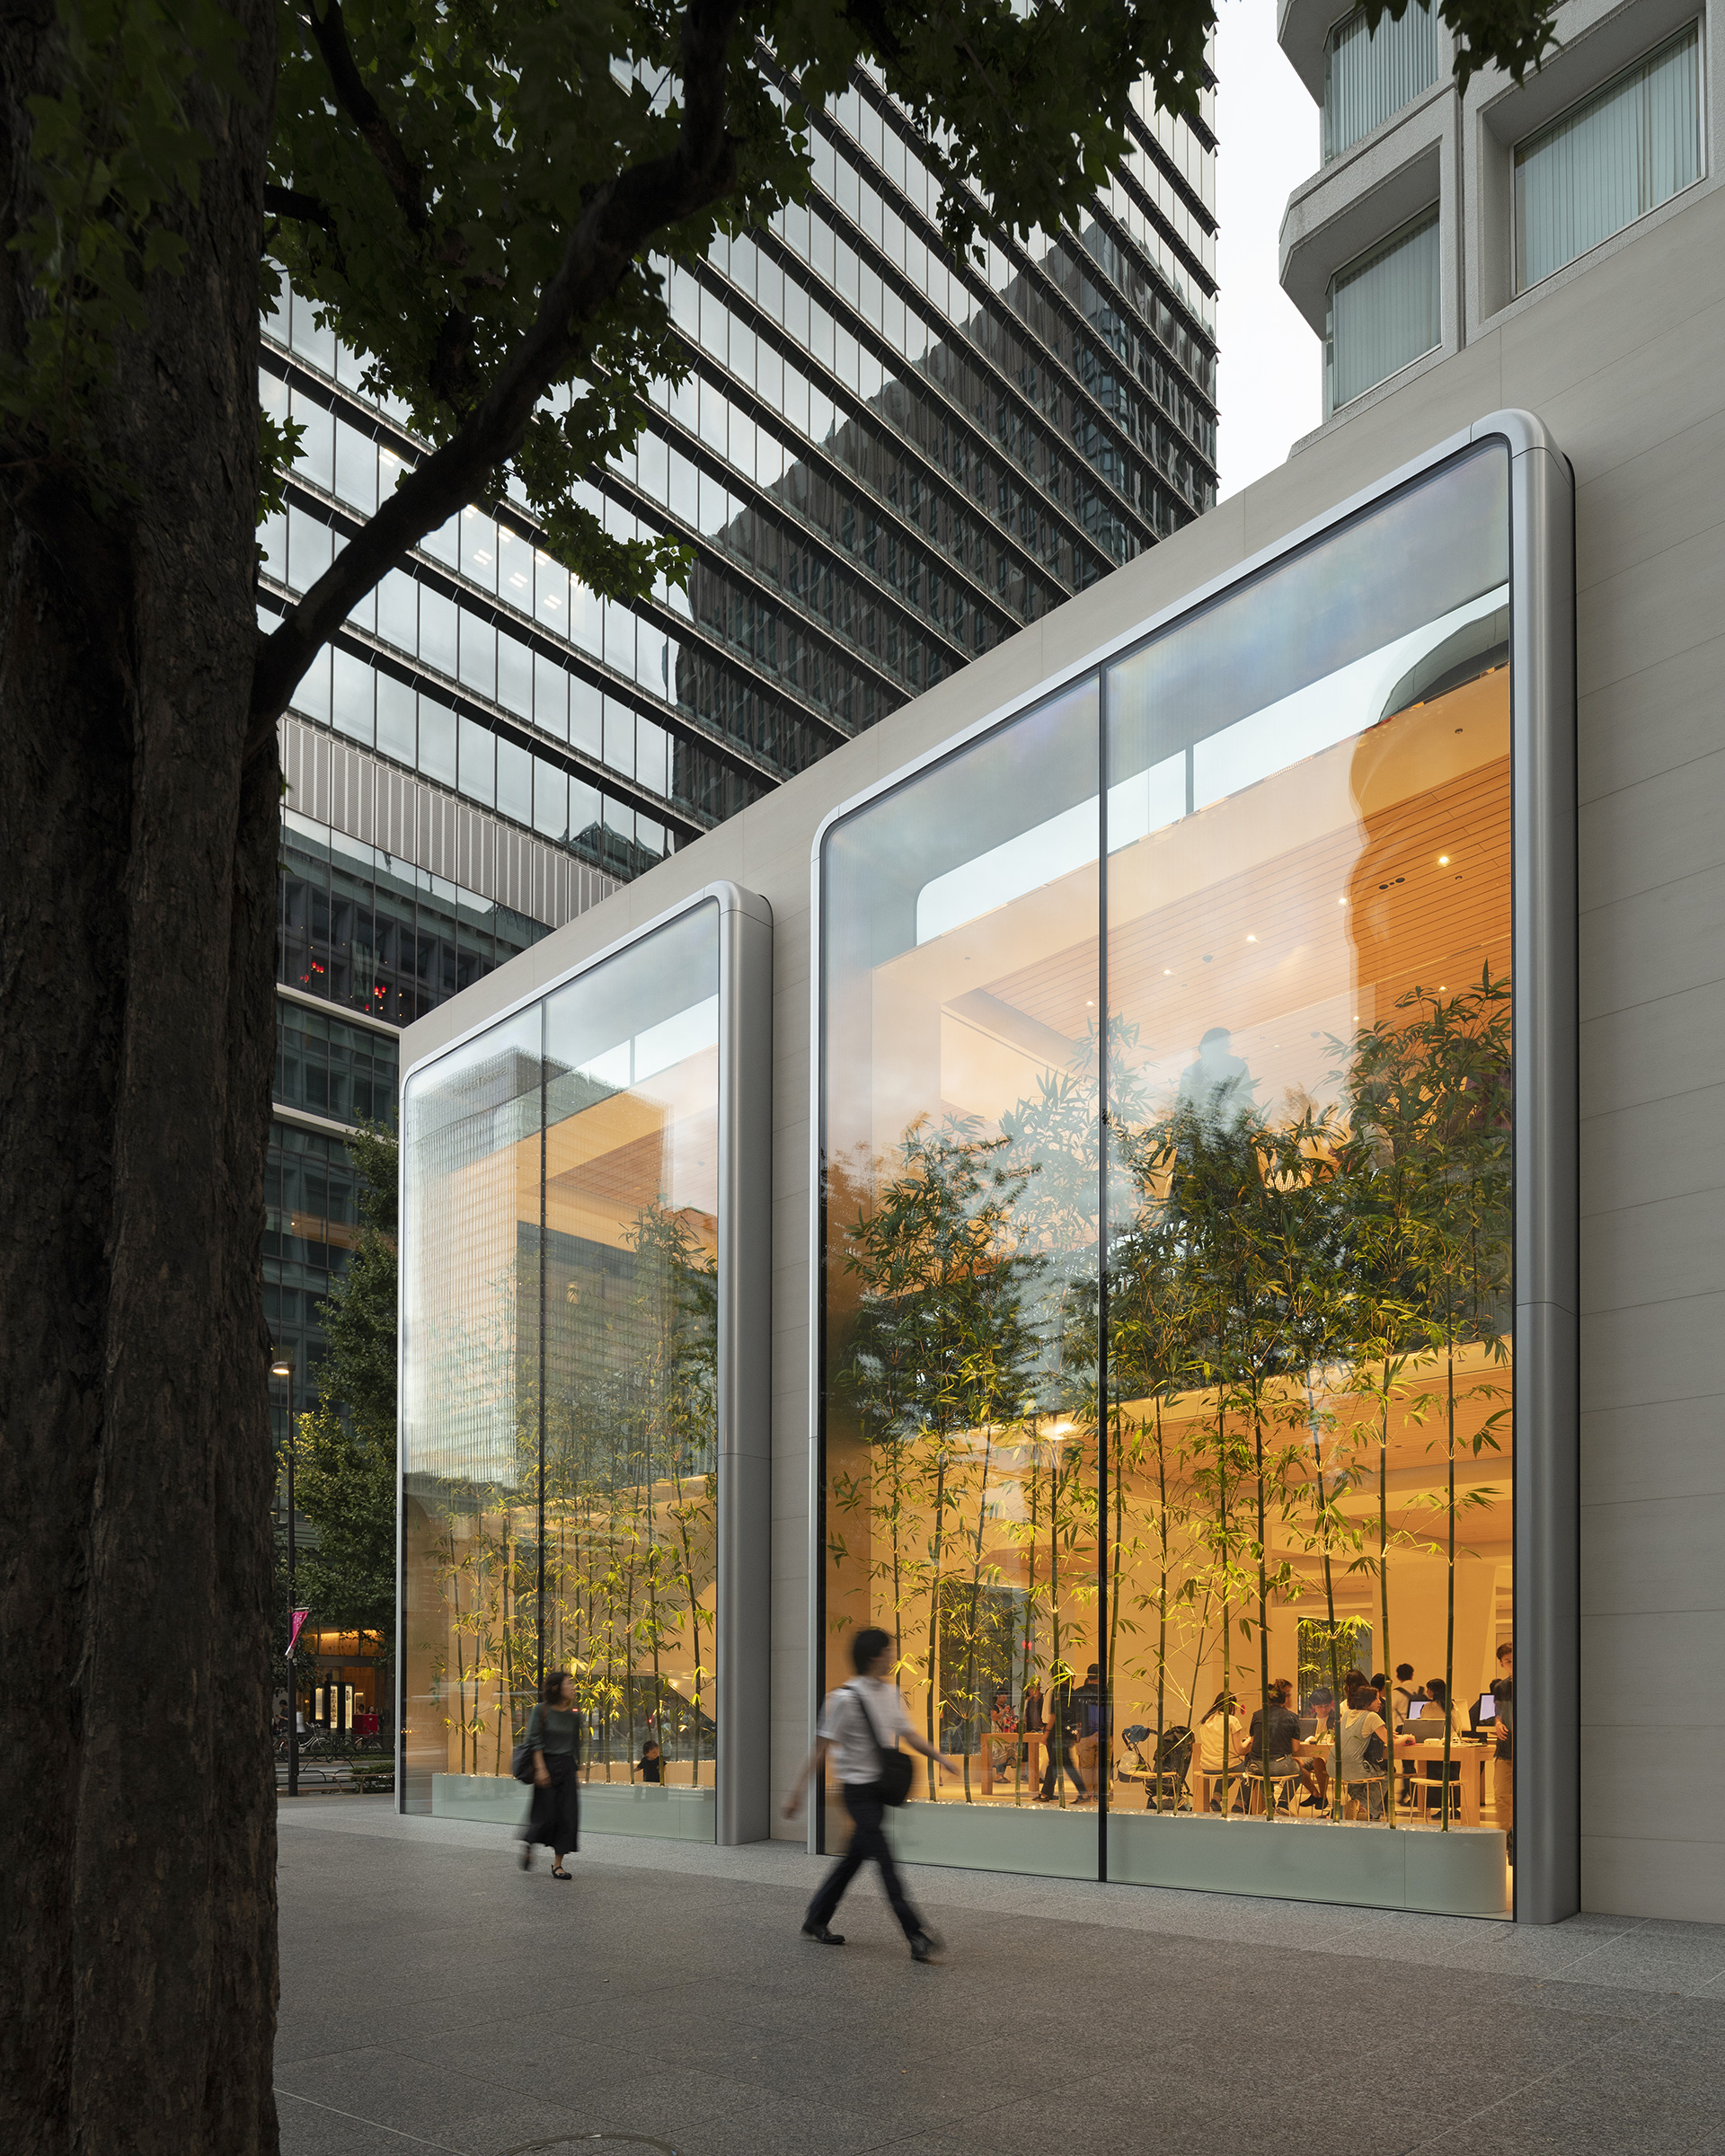 The building is rendered in white plaster, and has two storey vitrines | Apple Marunouchi | Foster + Partners | STIR